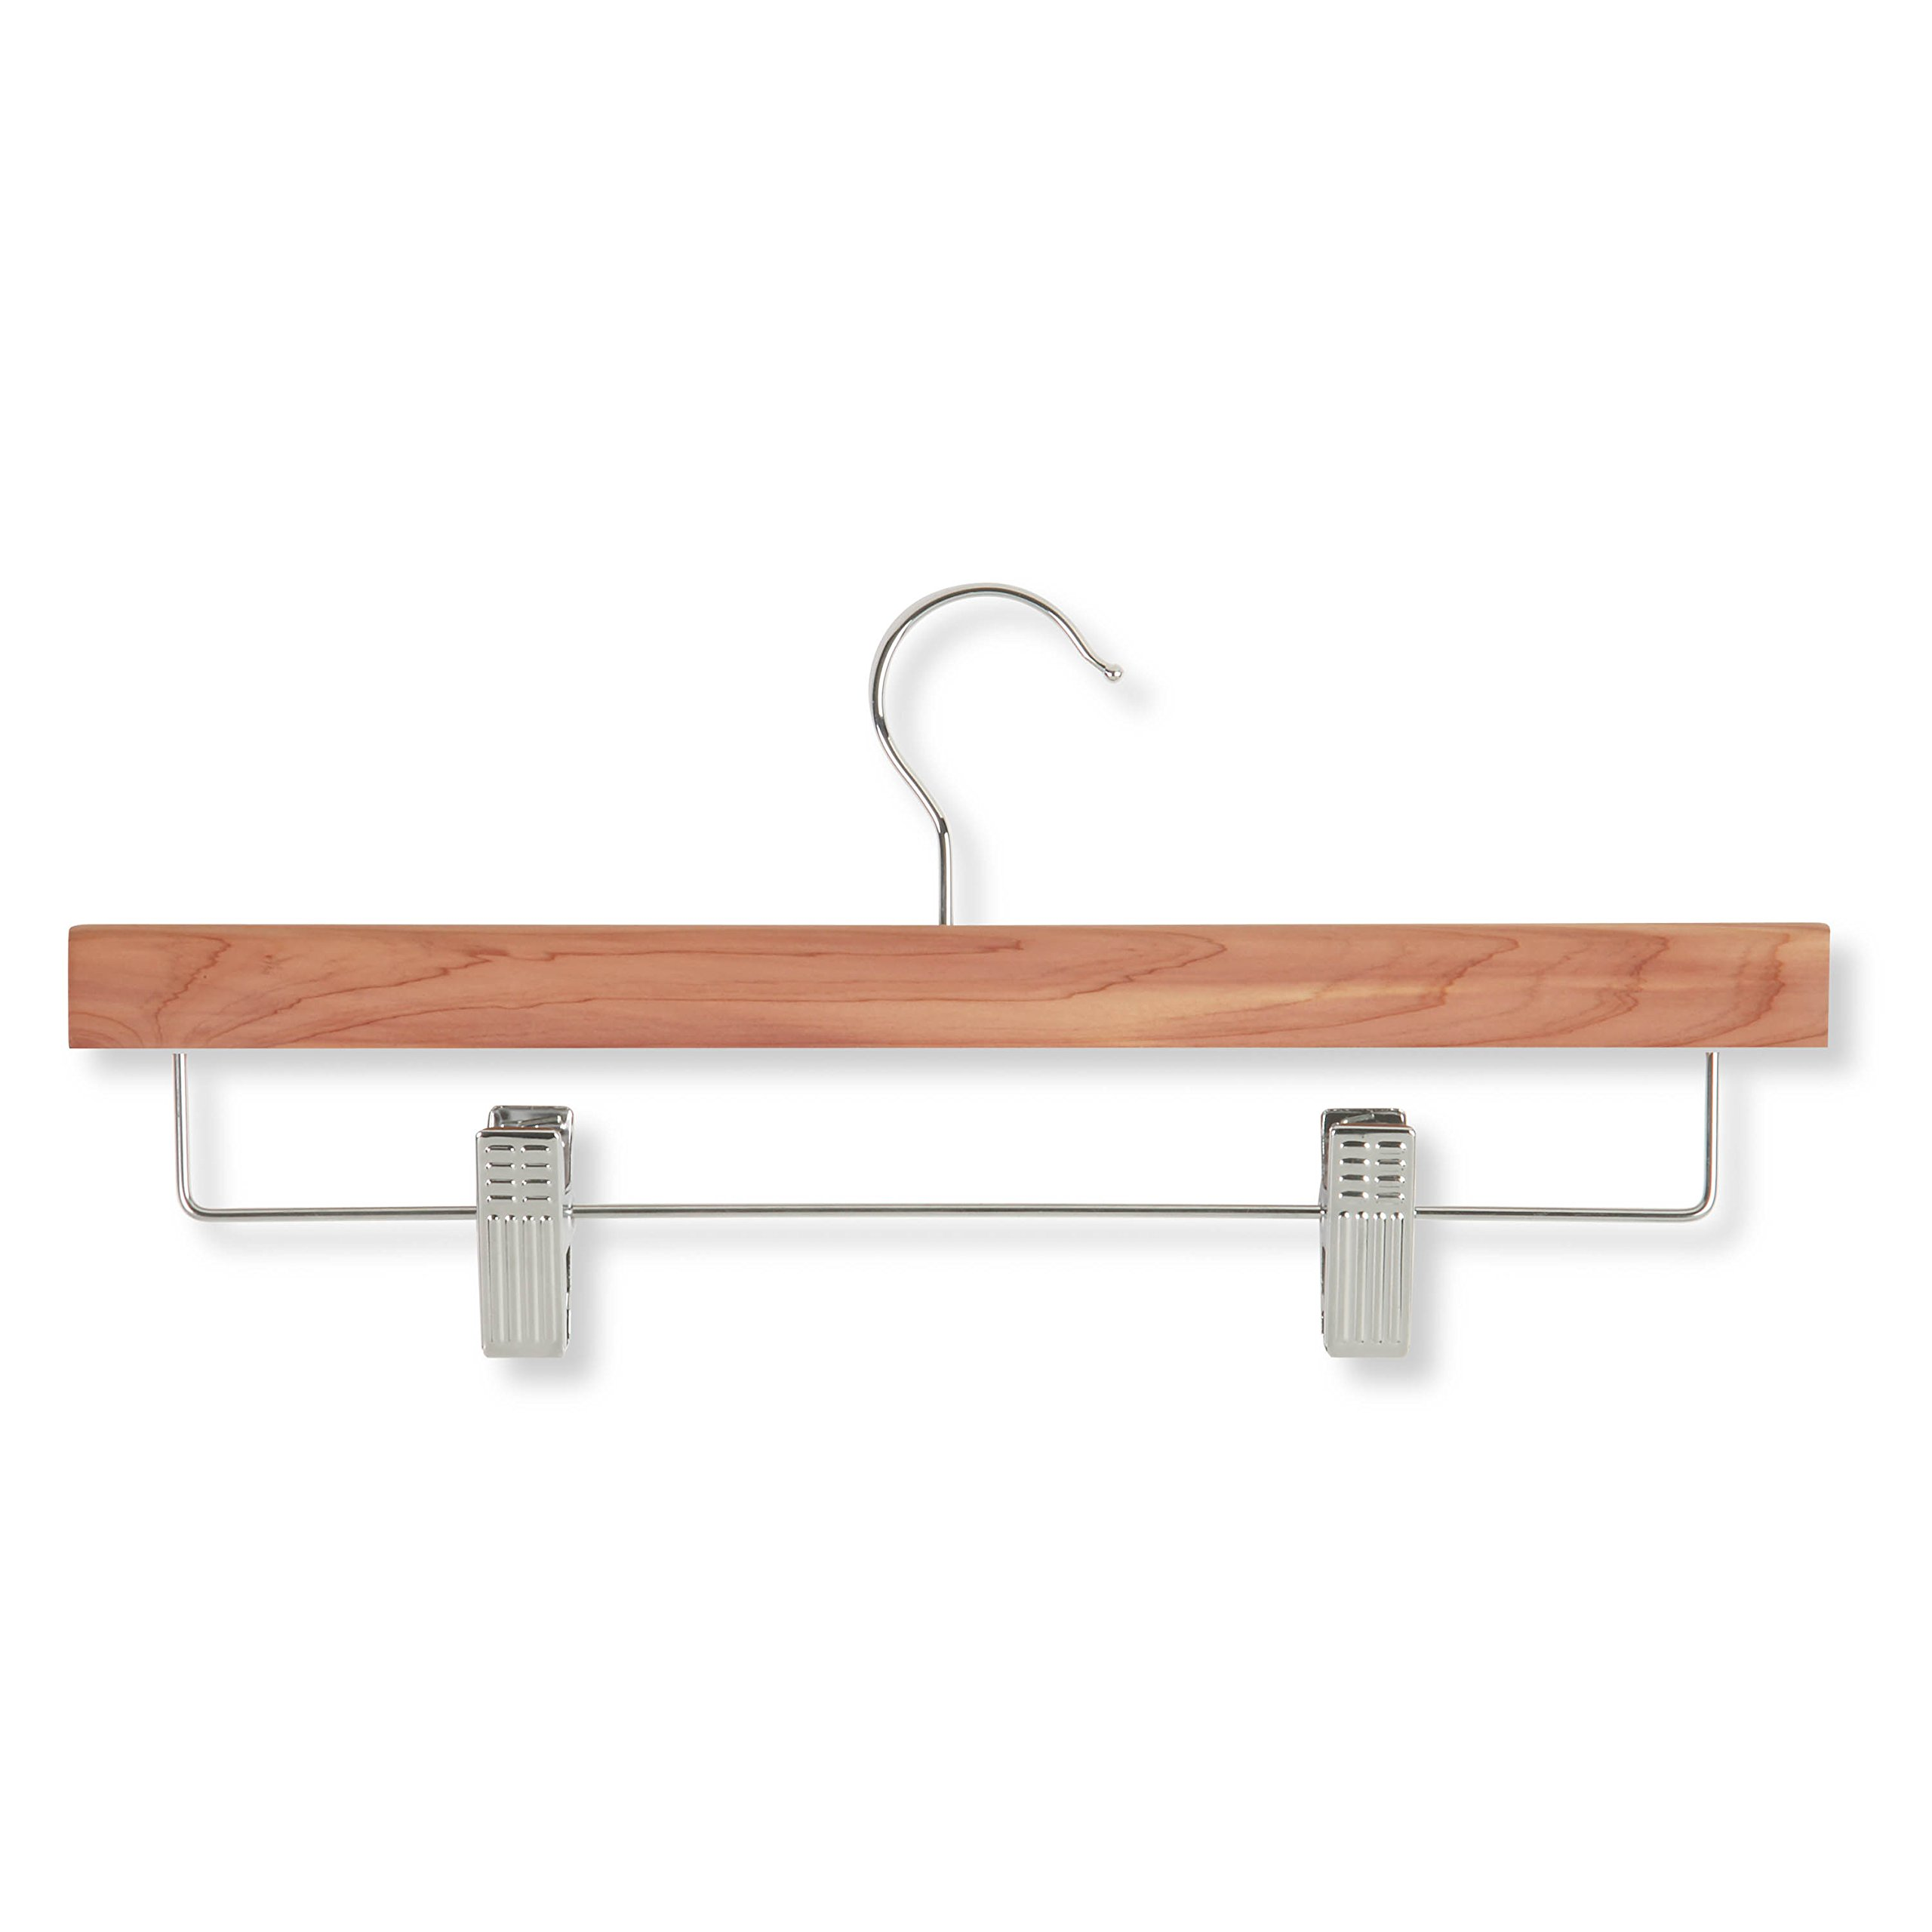 Honey-Can-Do HNGZ01535 Skirt/Pant Hangers with Clips, Cedar, 8-Pack by Honey-Can-Do